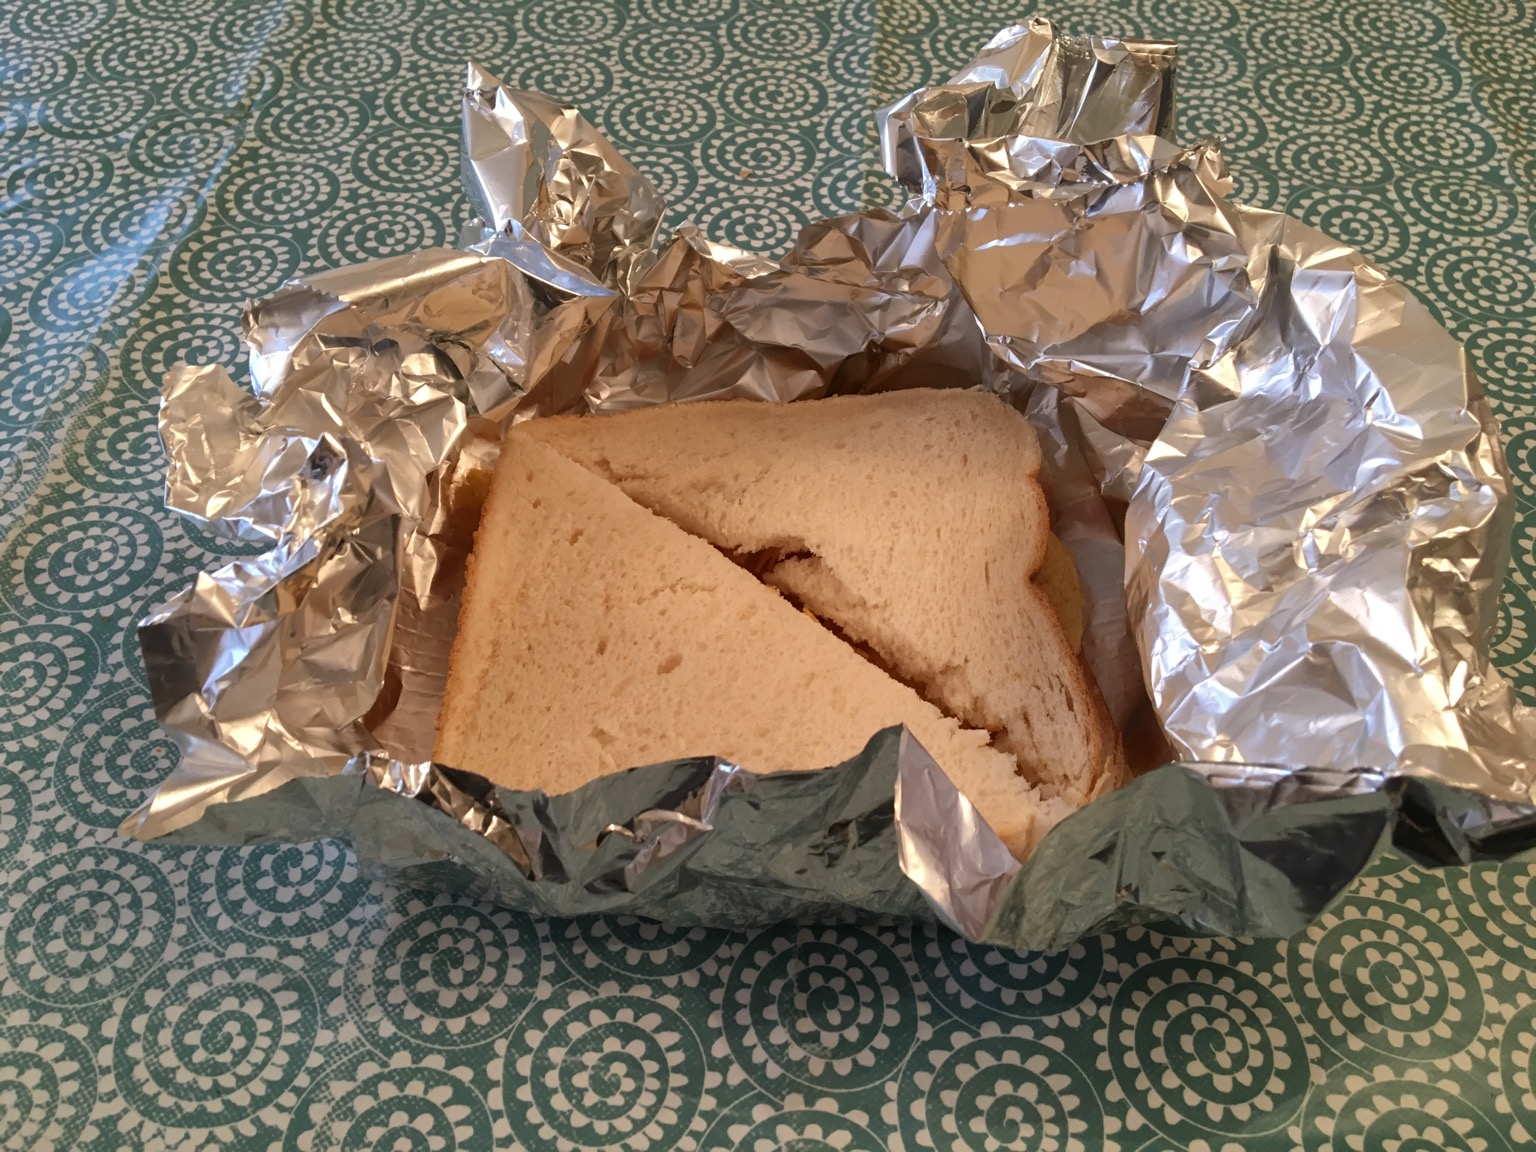 Crisp sandwich in foil, partially unwrapped